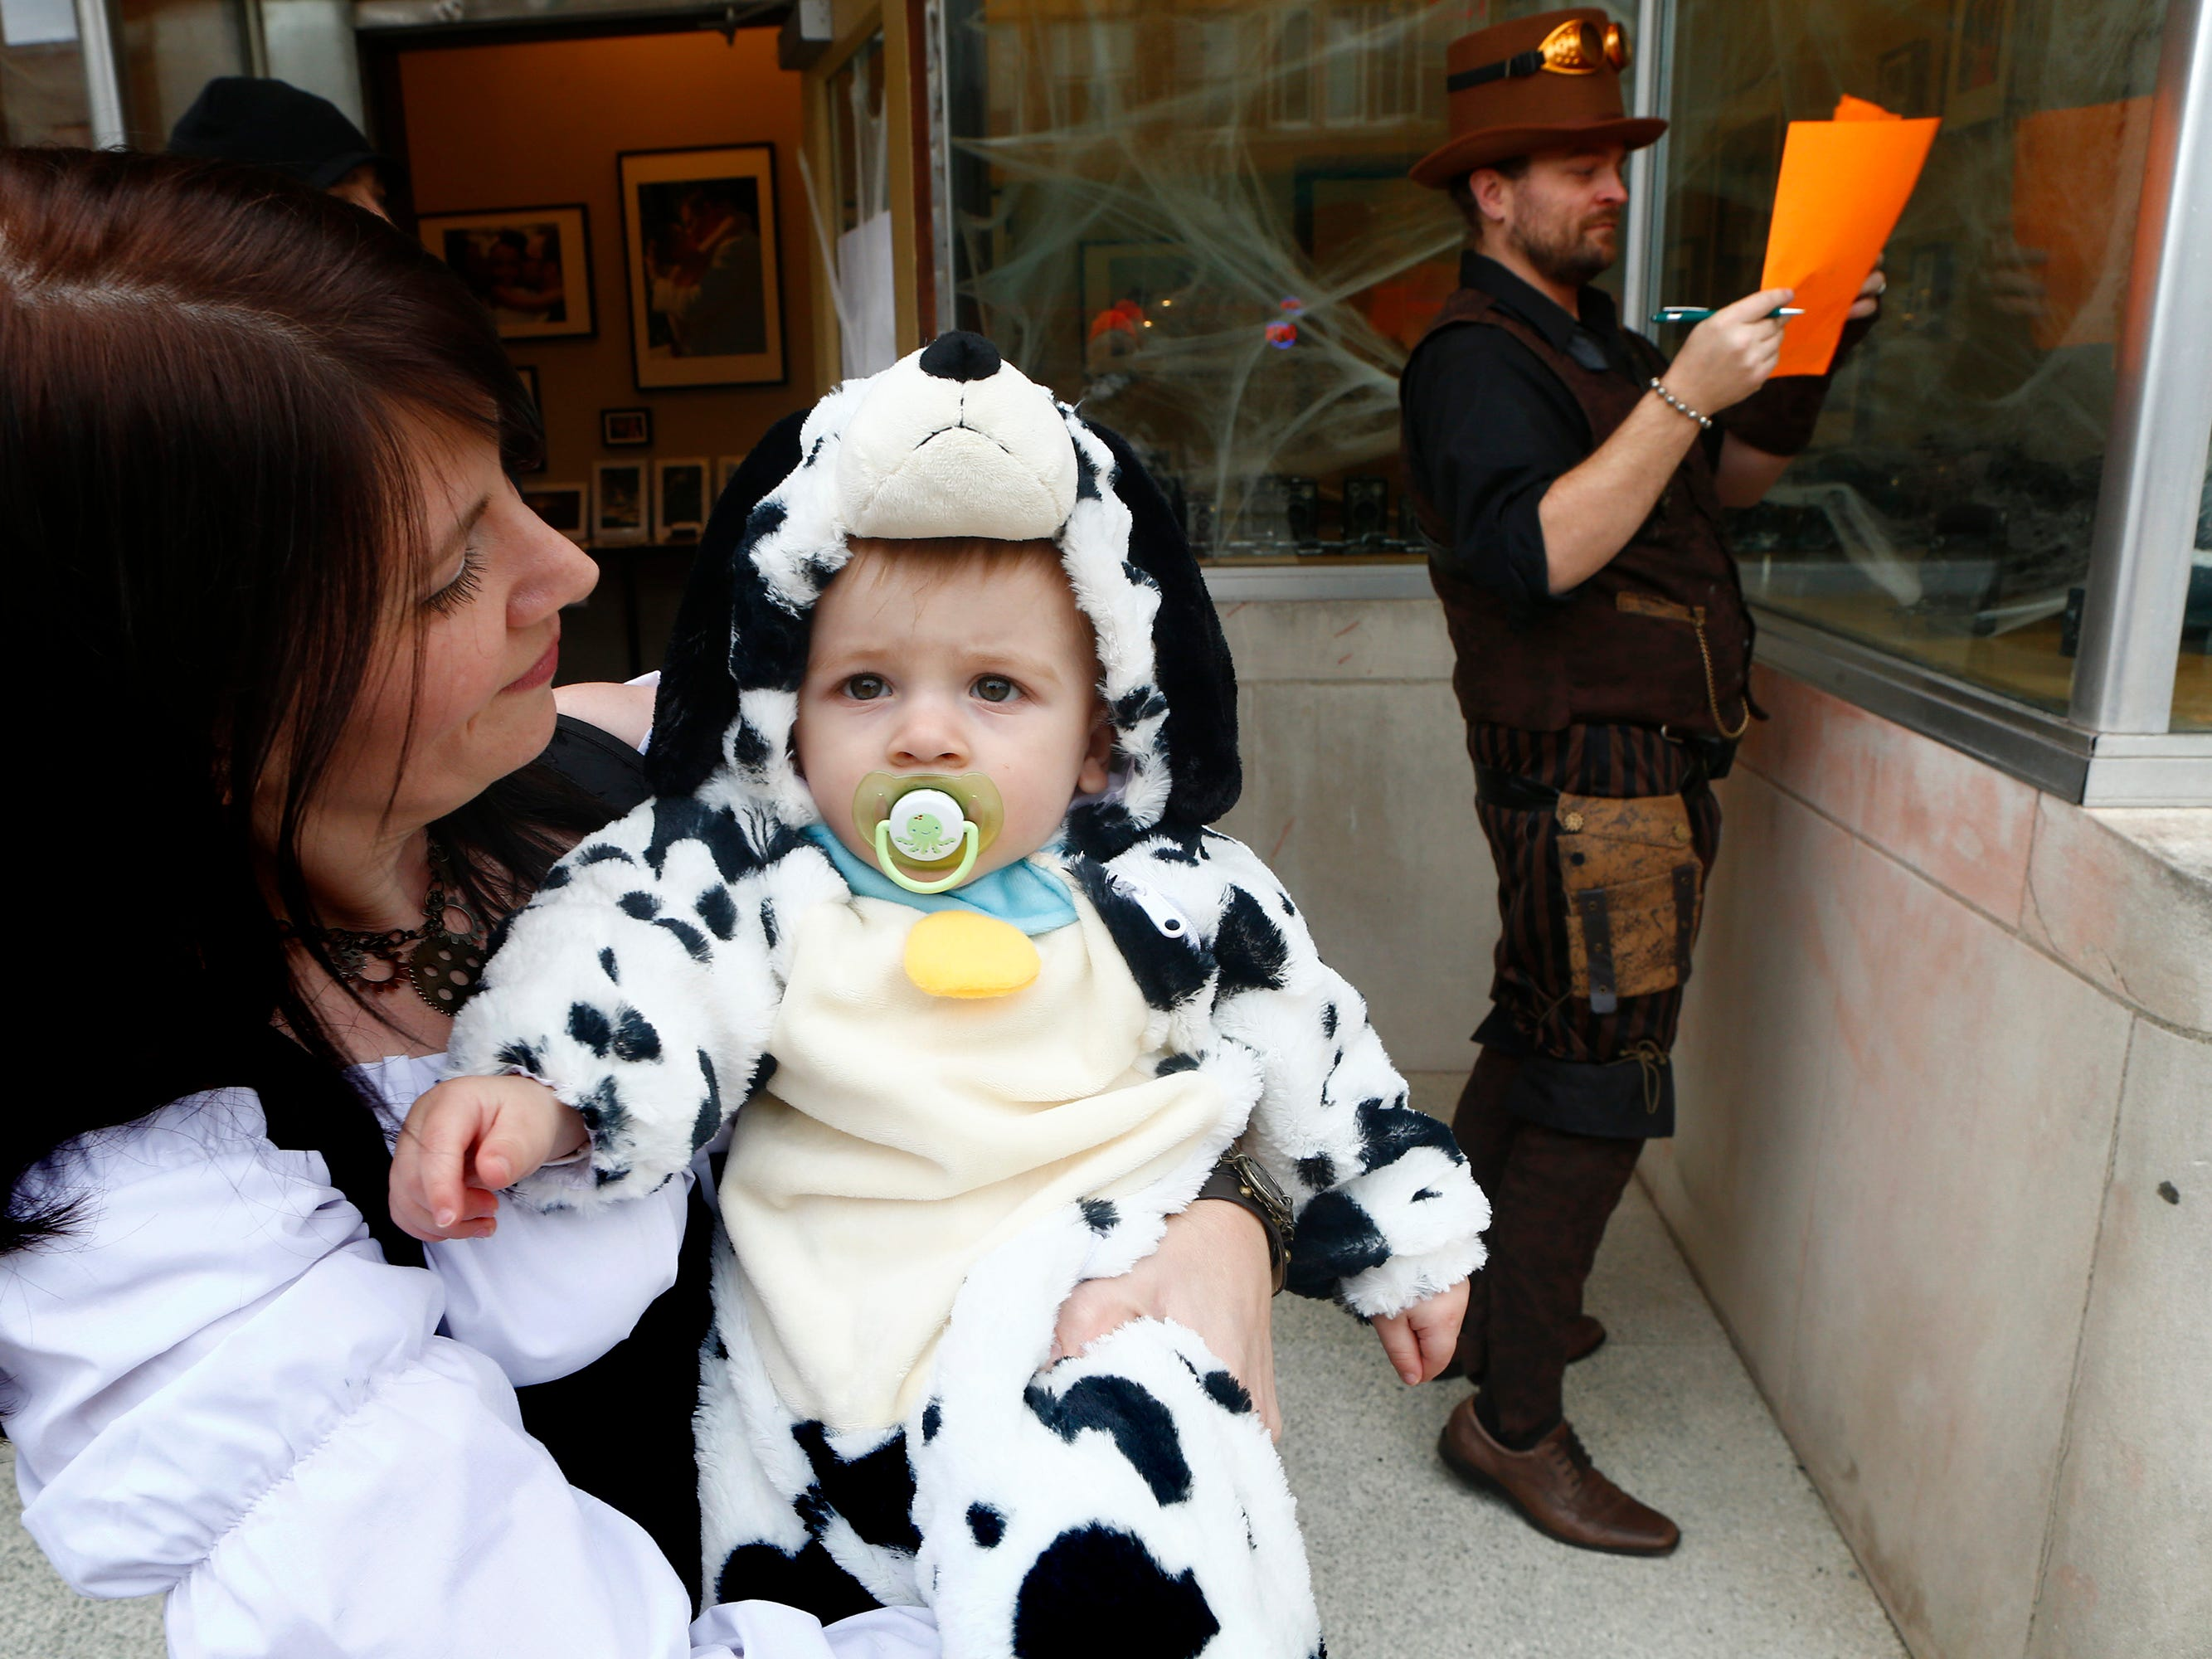 Braiden Krejci joined his parents Stacy and John Krejci as they handed out treats at Studio 919 during the South Milwaukee Downtown Trick or Treating on Oct. 27.